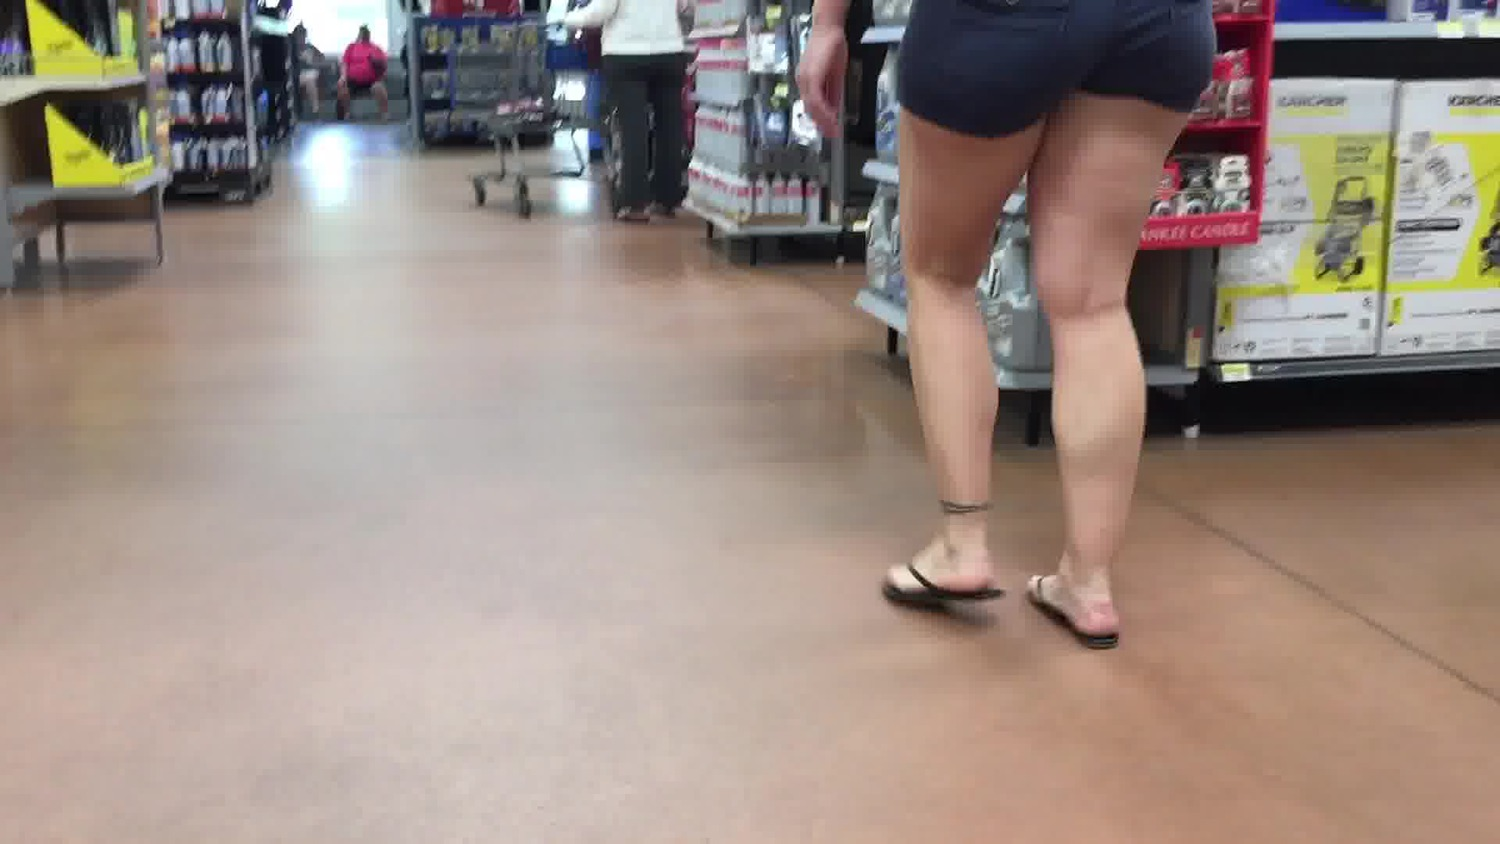 Pawg Wife Candid